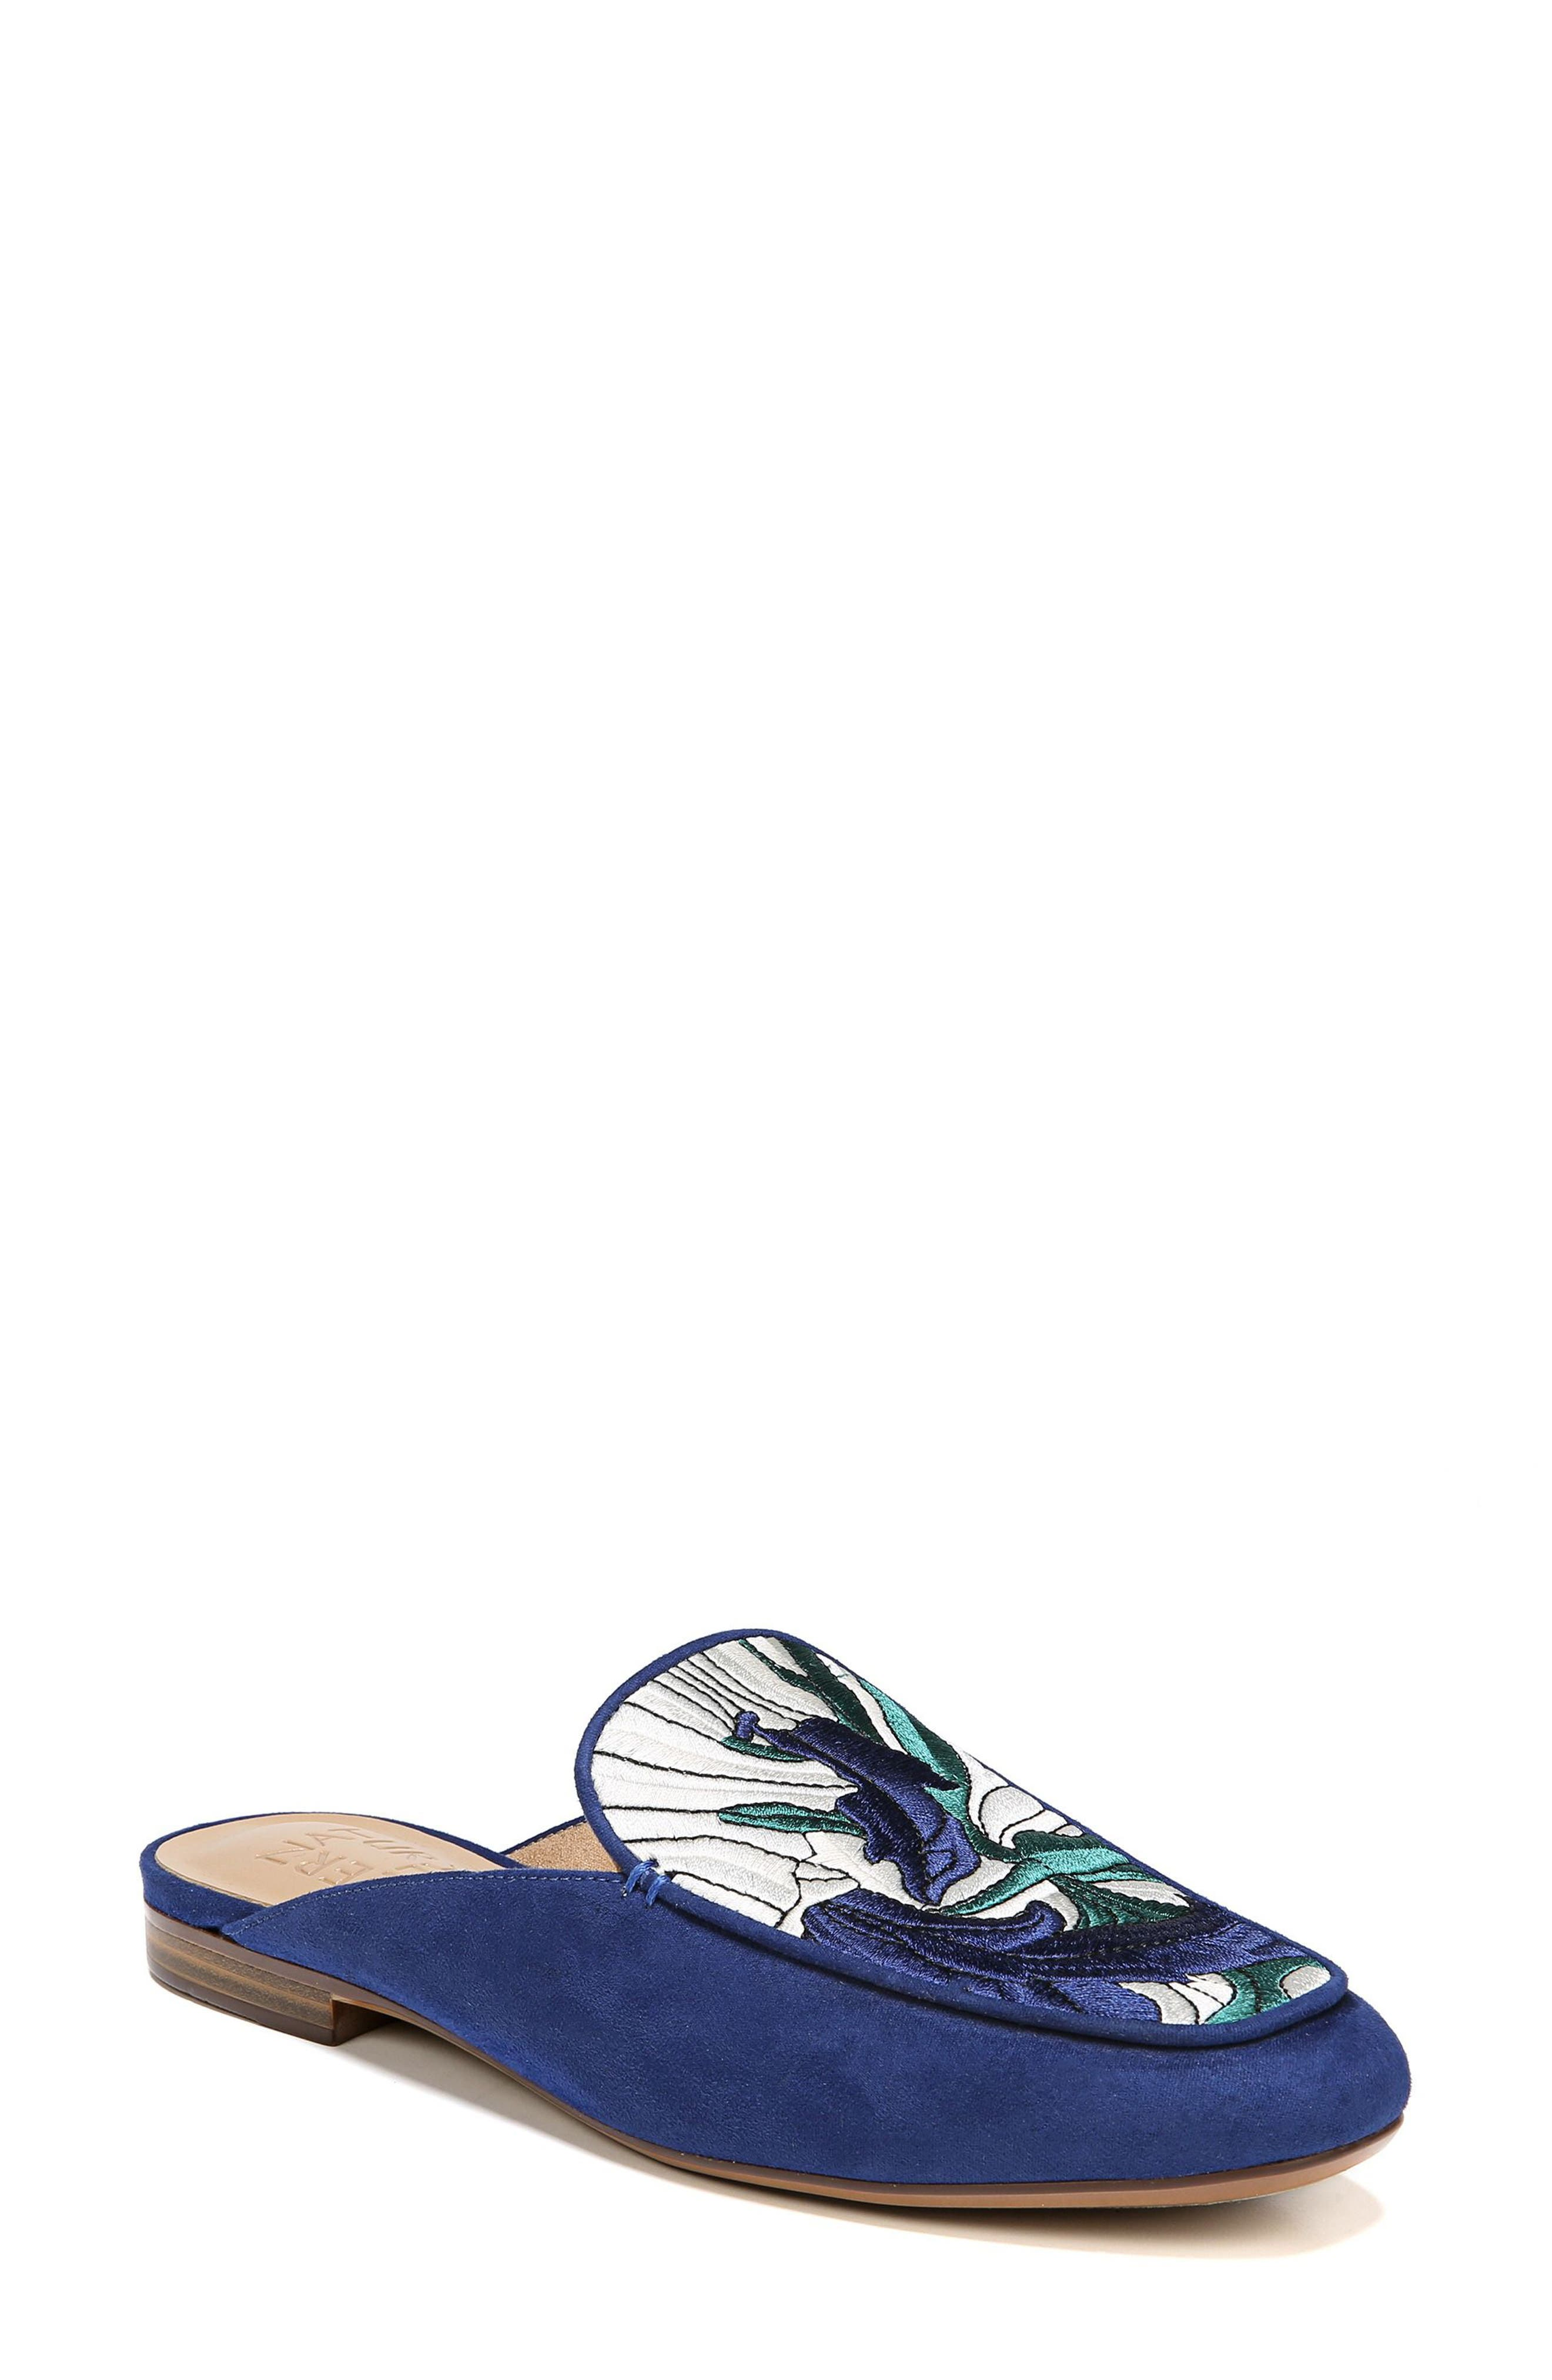 NATURALIZER Eden II Embroidered Mule, Main, color, SAPPHIRE FABRIC